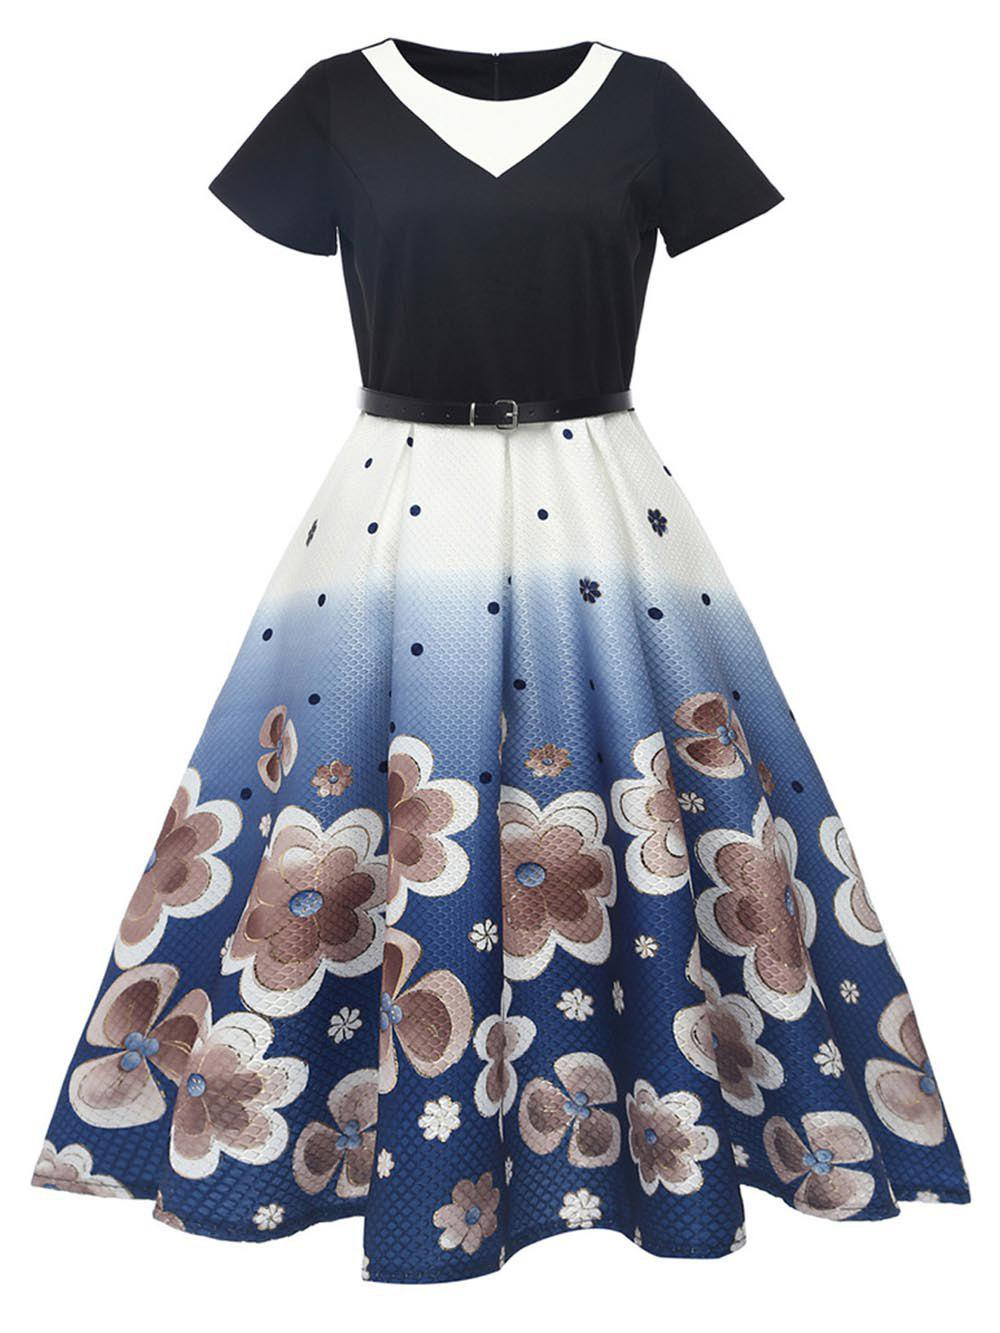 Buy Hepburn Vintage Series Women Dress Spring And Summer Round Neck Floral Printing Stitching Design Short Sleeve Corset Dress